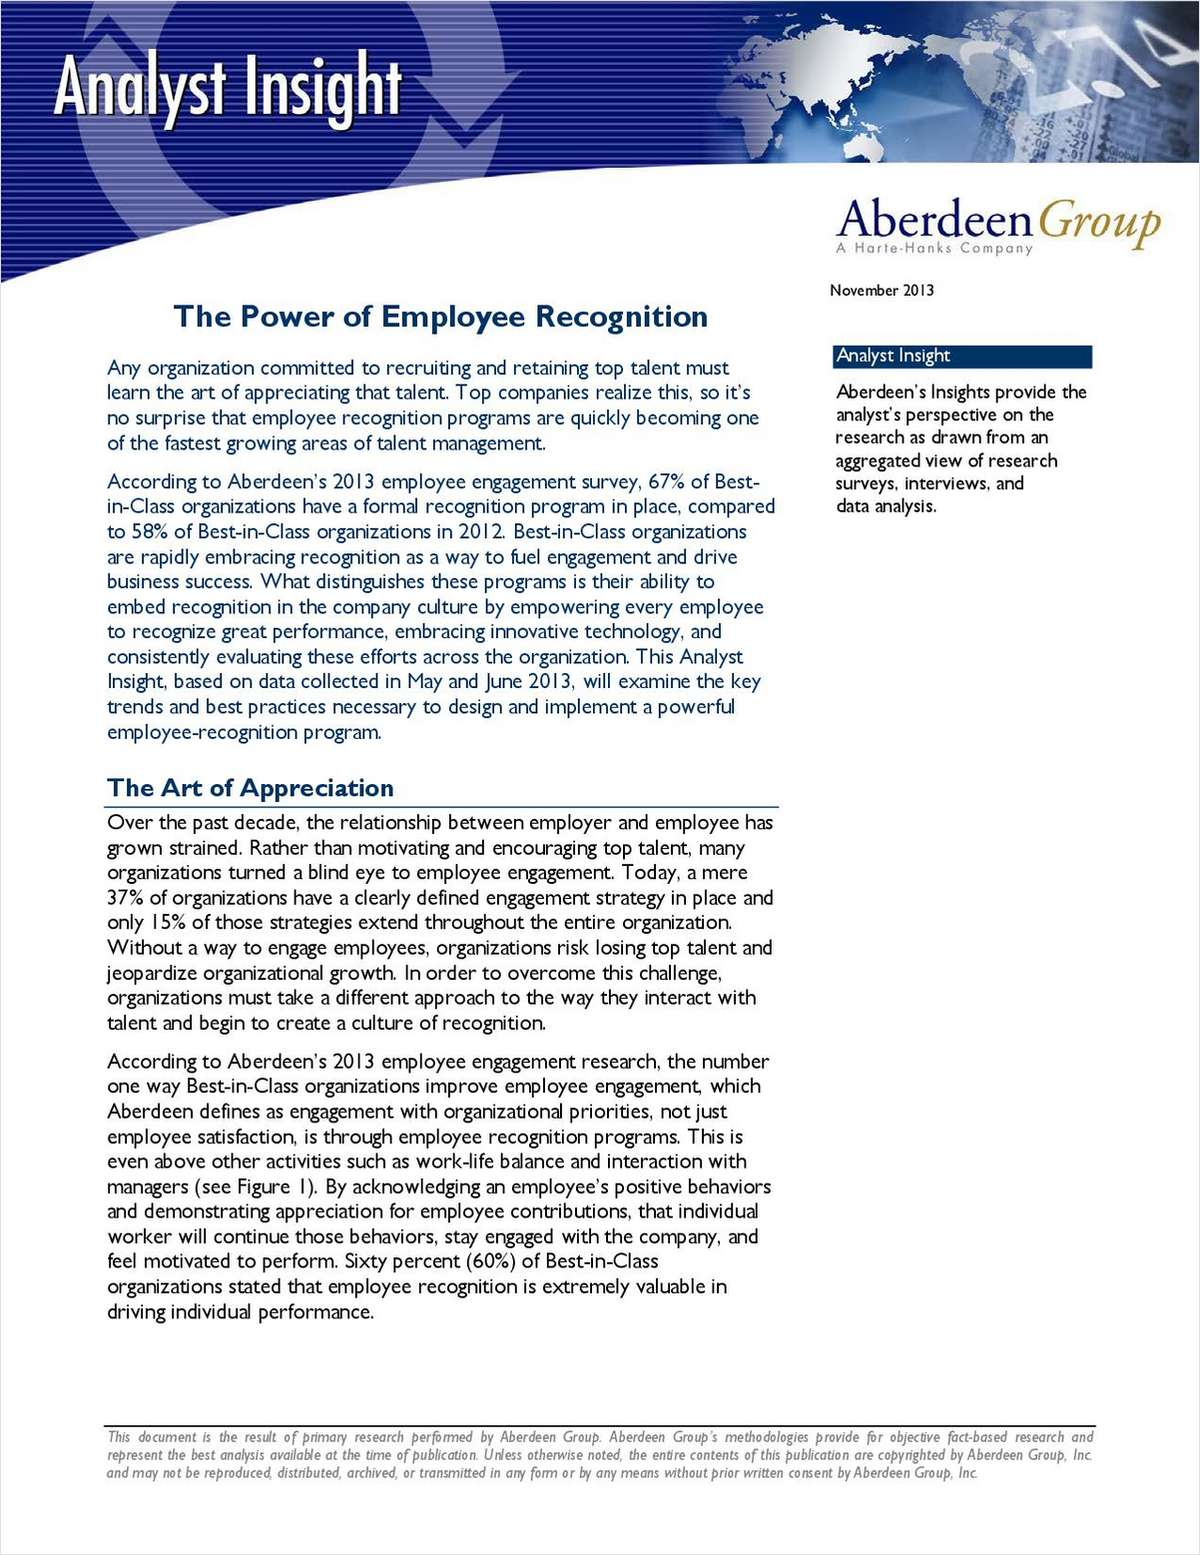 Aberdeen Analyst Insight: The Power of Employee Recognition